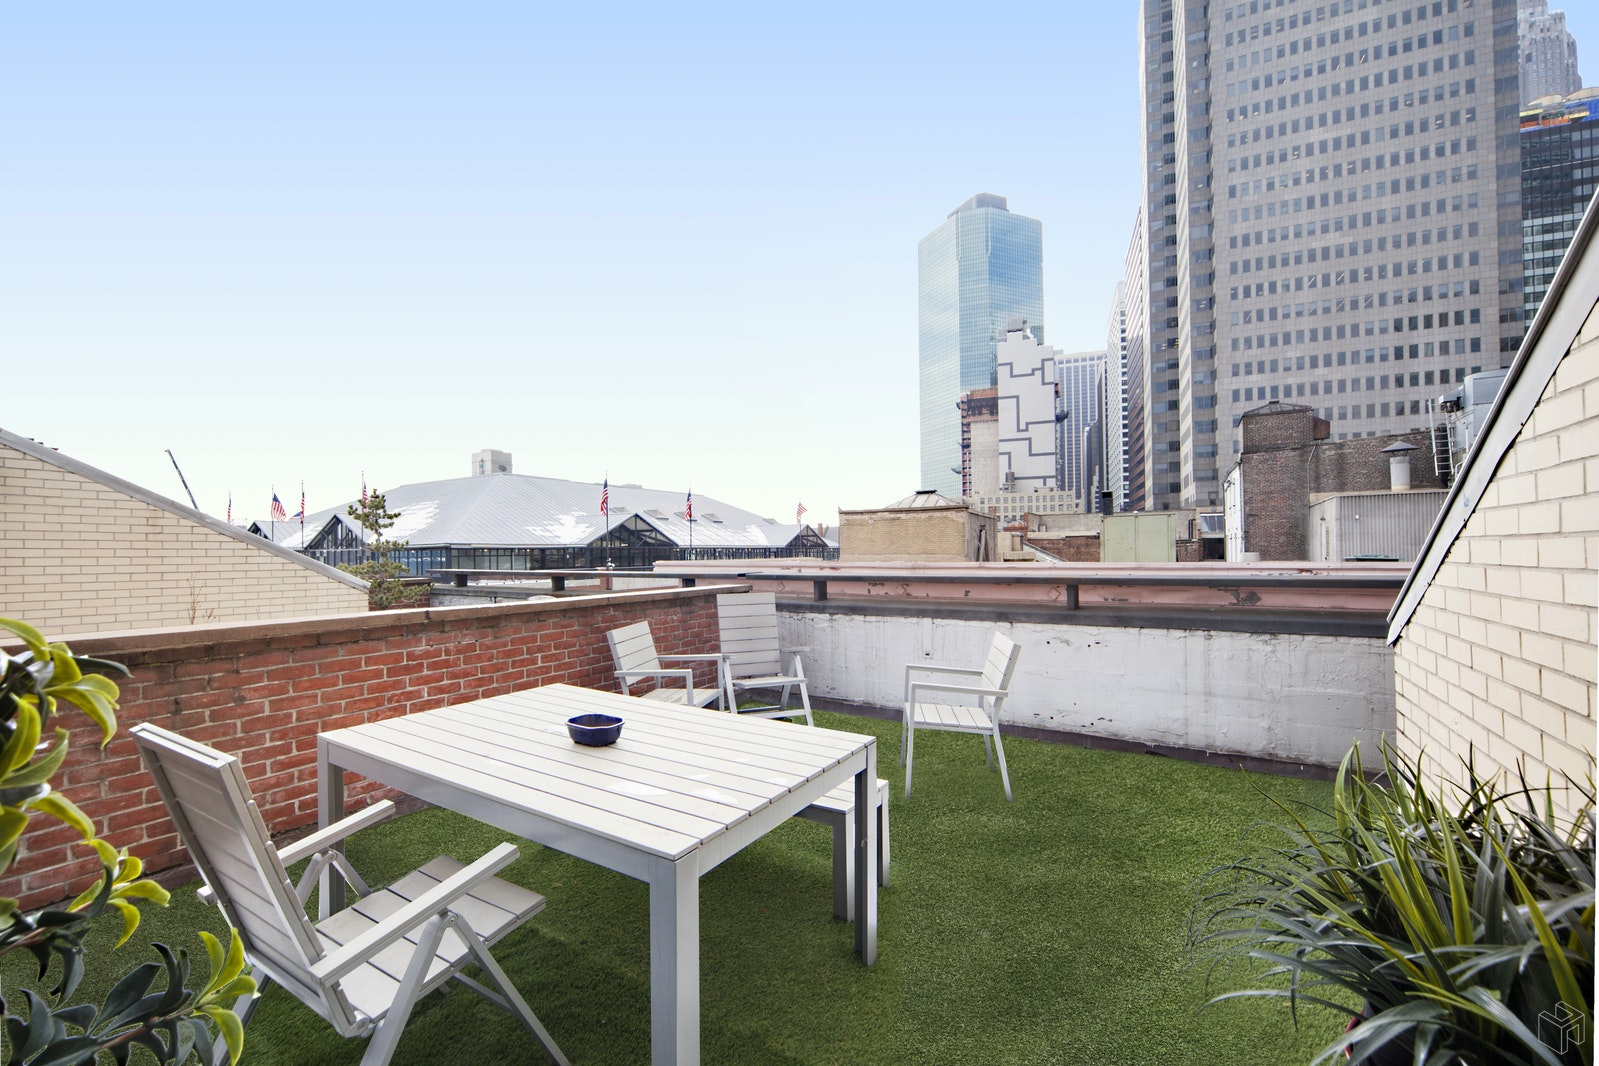 136 BEEKMAN STREET TH, Lower Manhattan, $3,995,000, Web #: 19557183